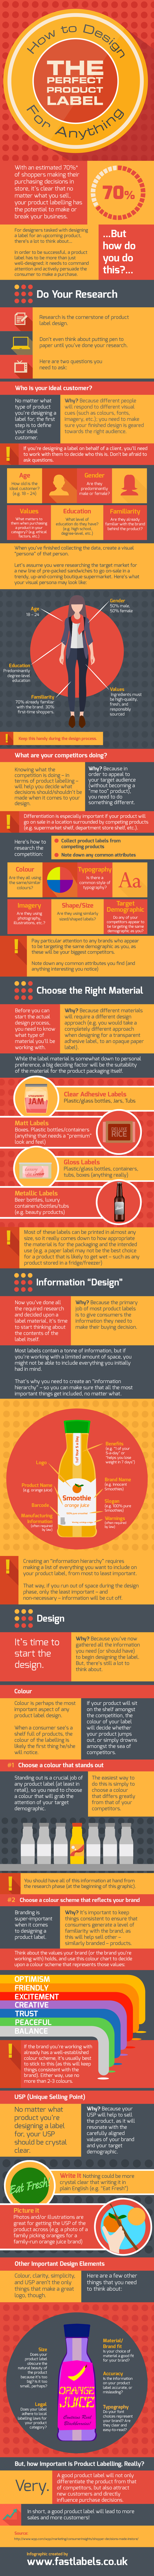 perfect-label_infographic_03